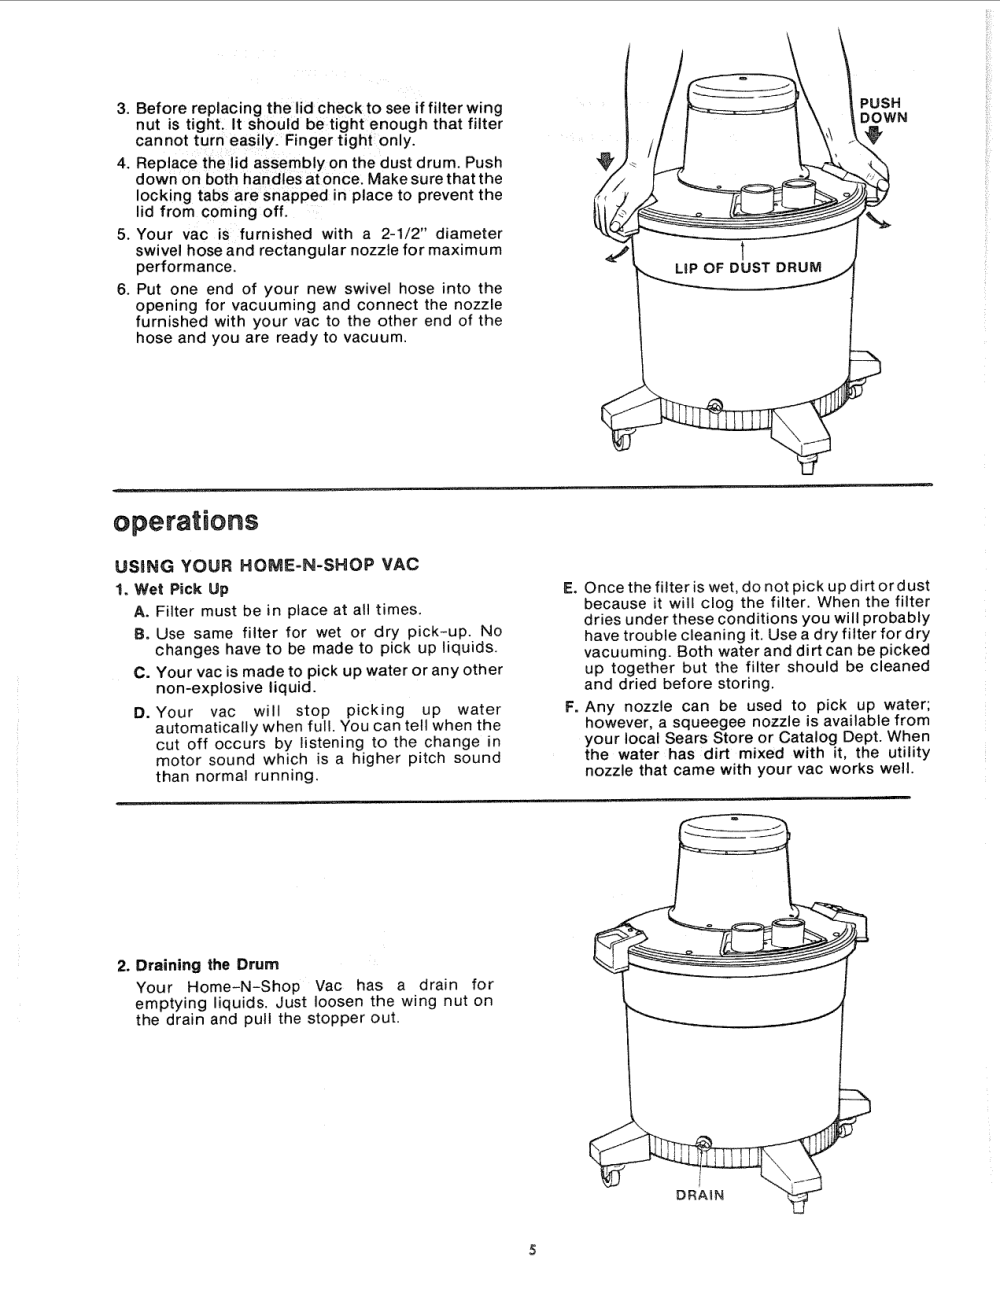 medium resolution of page 5 of 12 craftsman 113178200 user manual 16 gallon home n shop